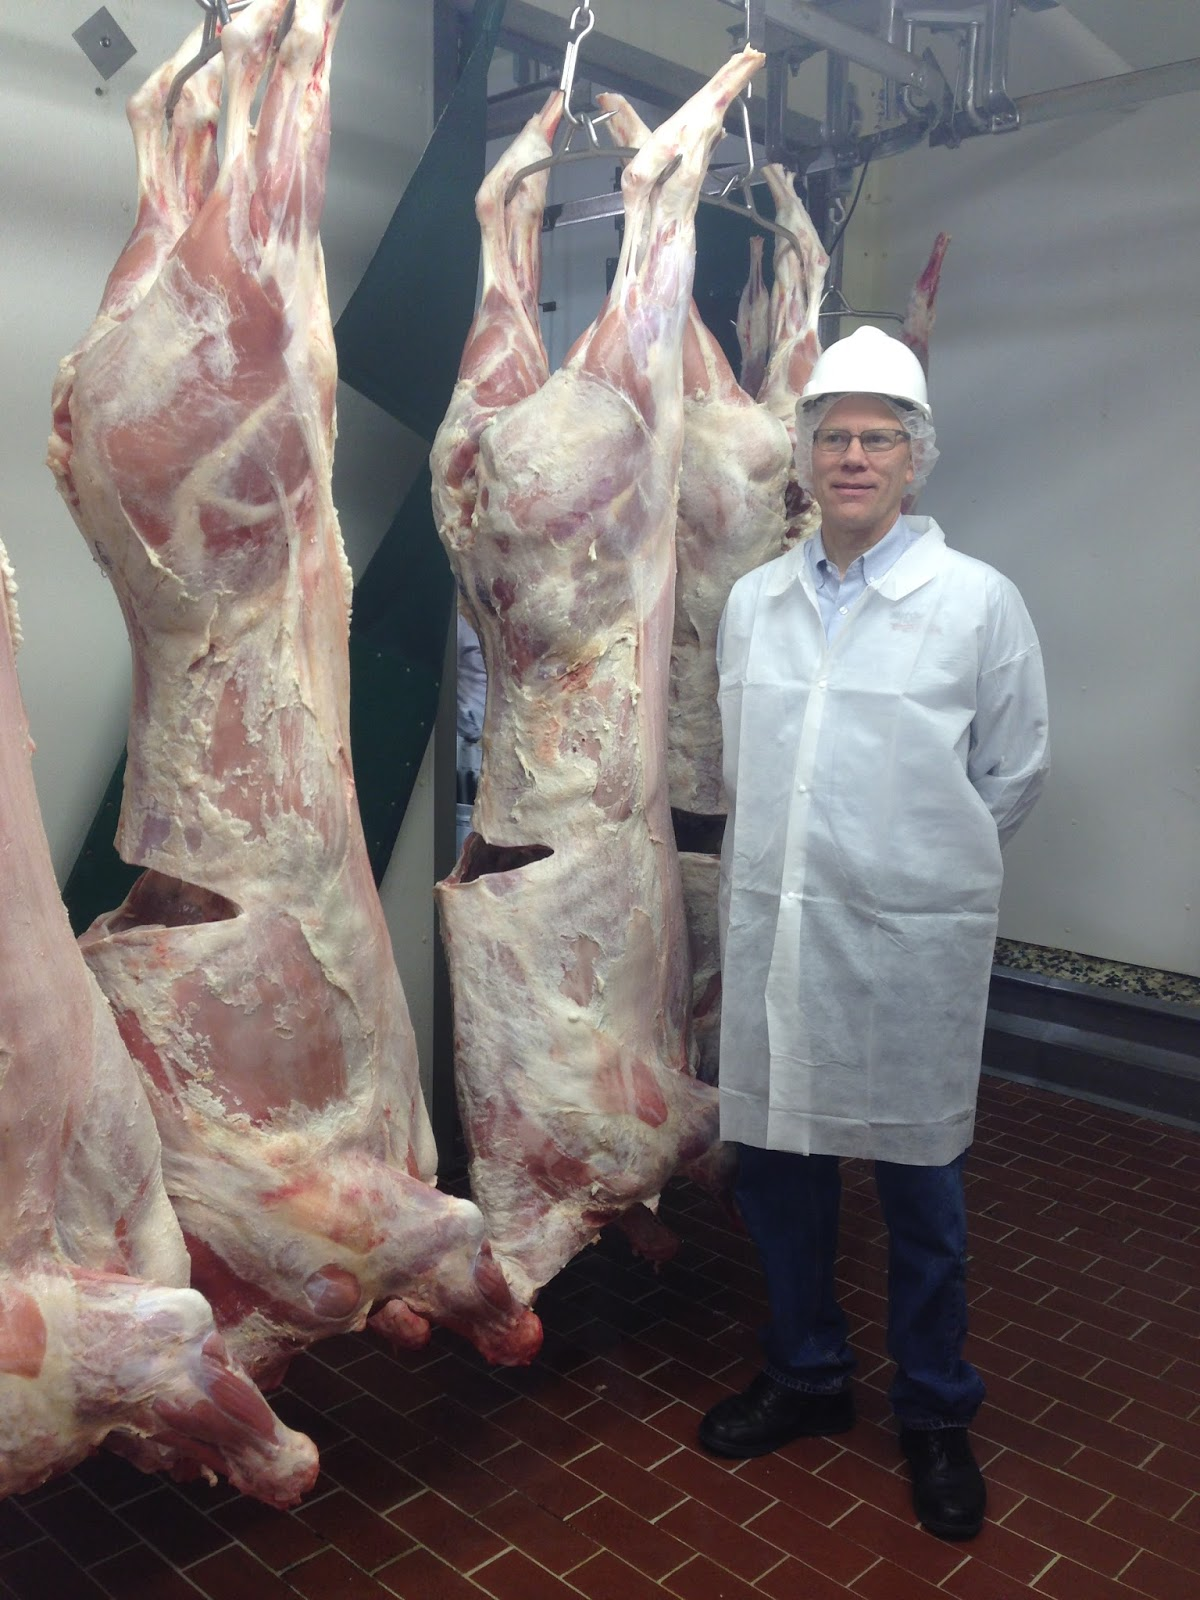 You Can See The Size Of The Veal Carcasses At Marcho Farms. This Man Is  About 6 Foot Tall